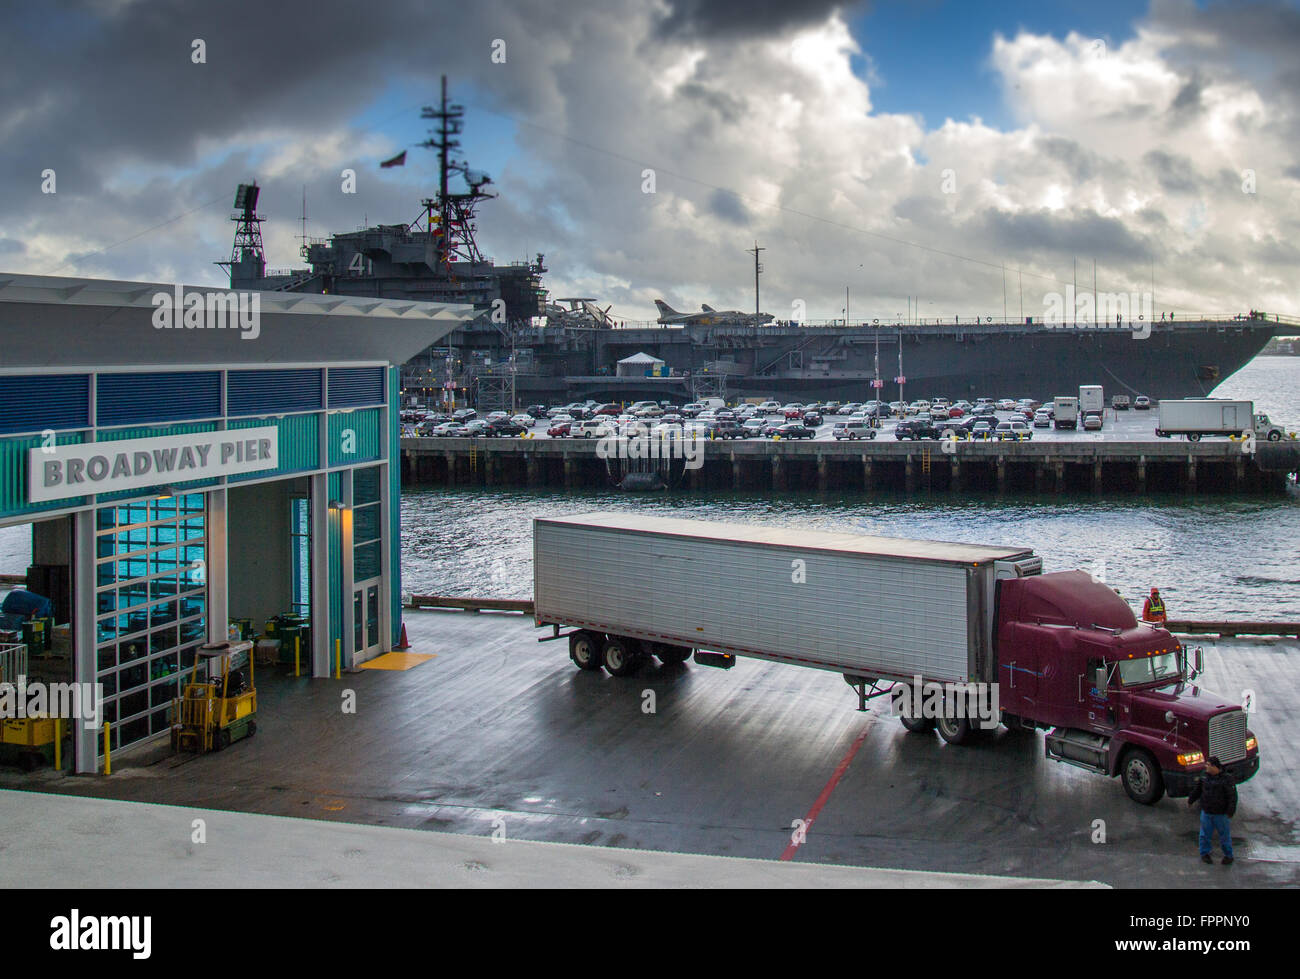 A Loading Dock At A Cruise Ship Terminal With A Semi Truck Full Of - Cruise ship supplies